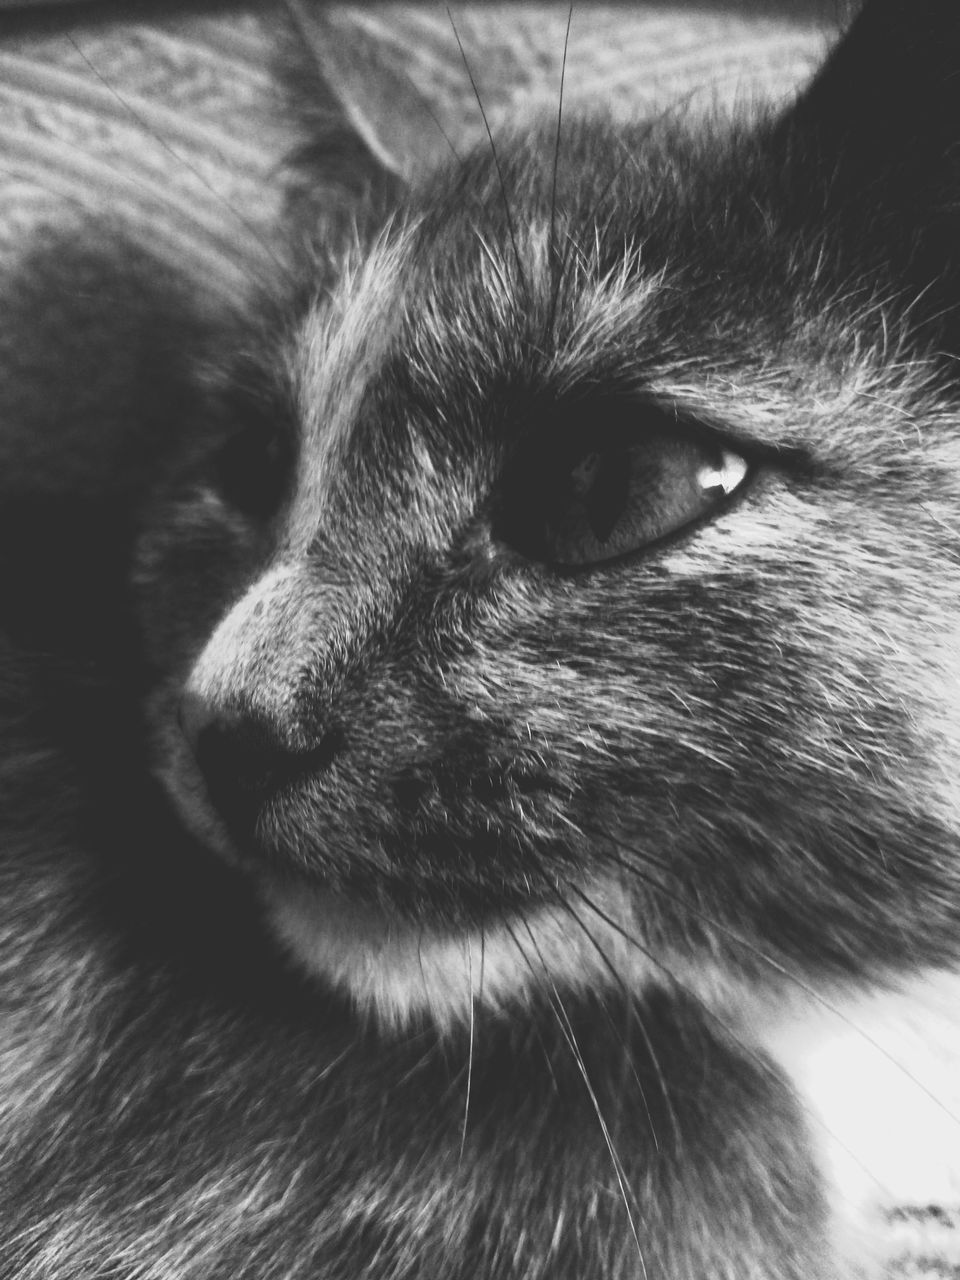 mammal, one animal, animal, animal themes, pets, domestic, domestic animals, vertebrate, close-up, cat, animal body part, feline, domestic cat, no people, animal head, looking away, relaxation, whisker, animal hair, looking, animal eye, snout, animal nose